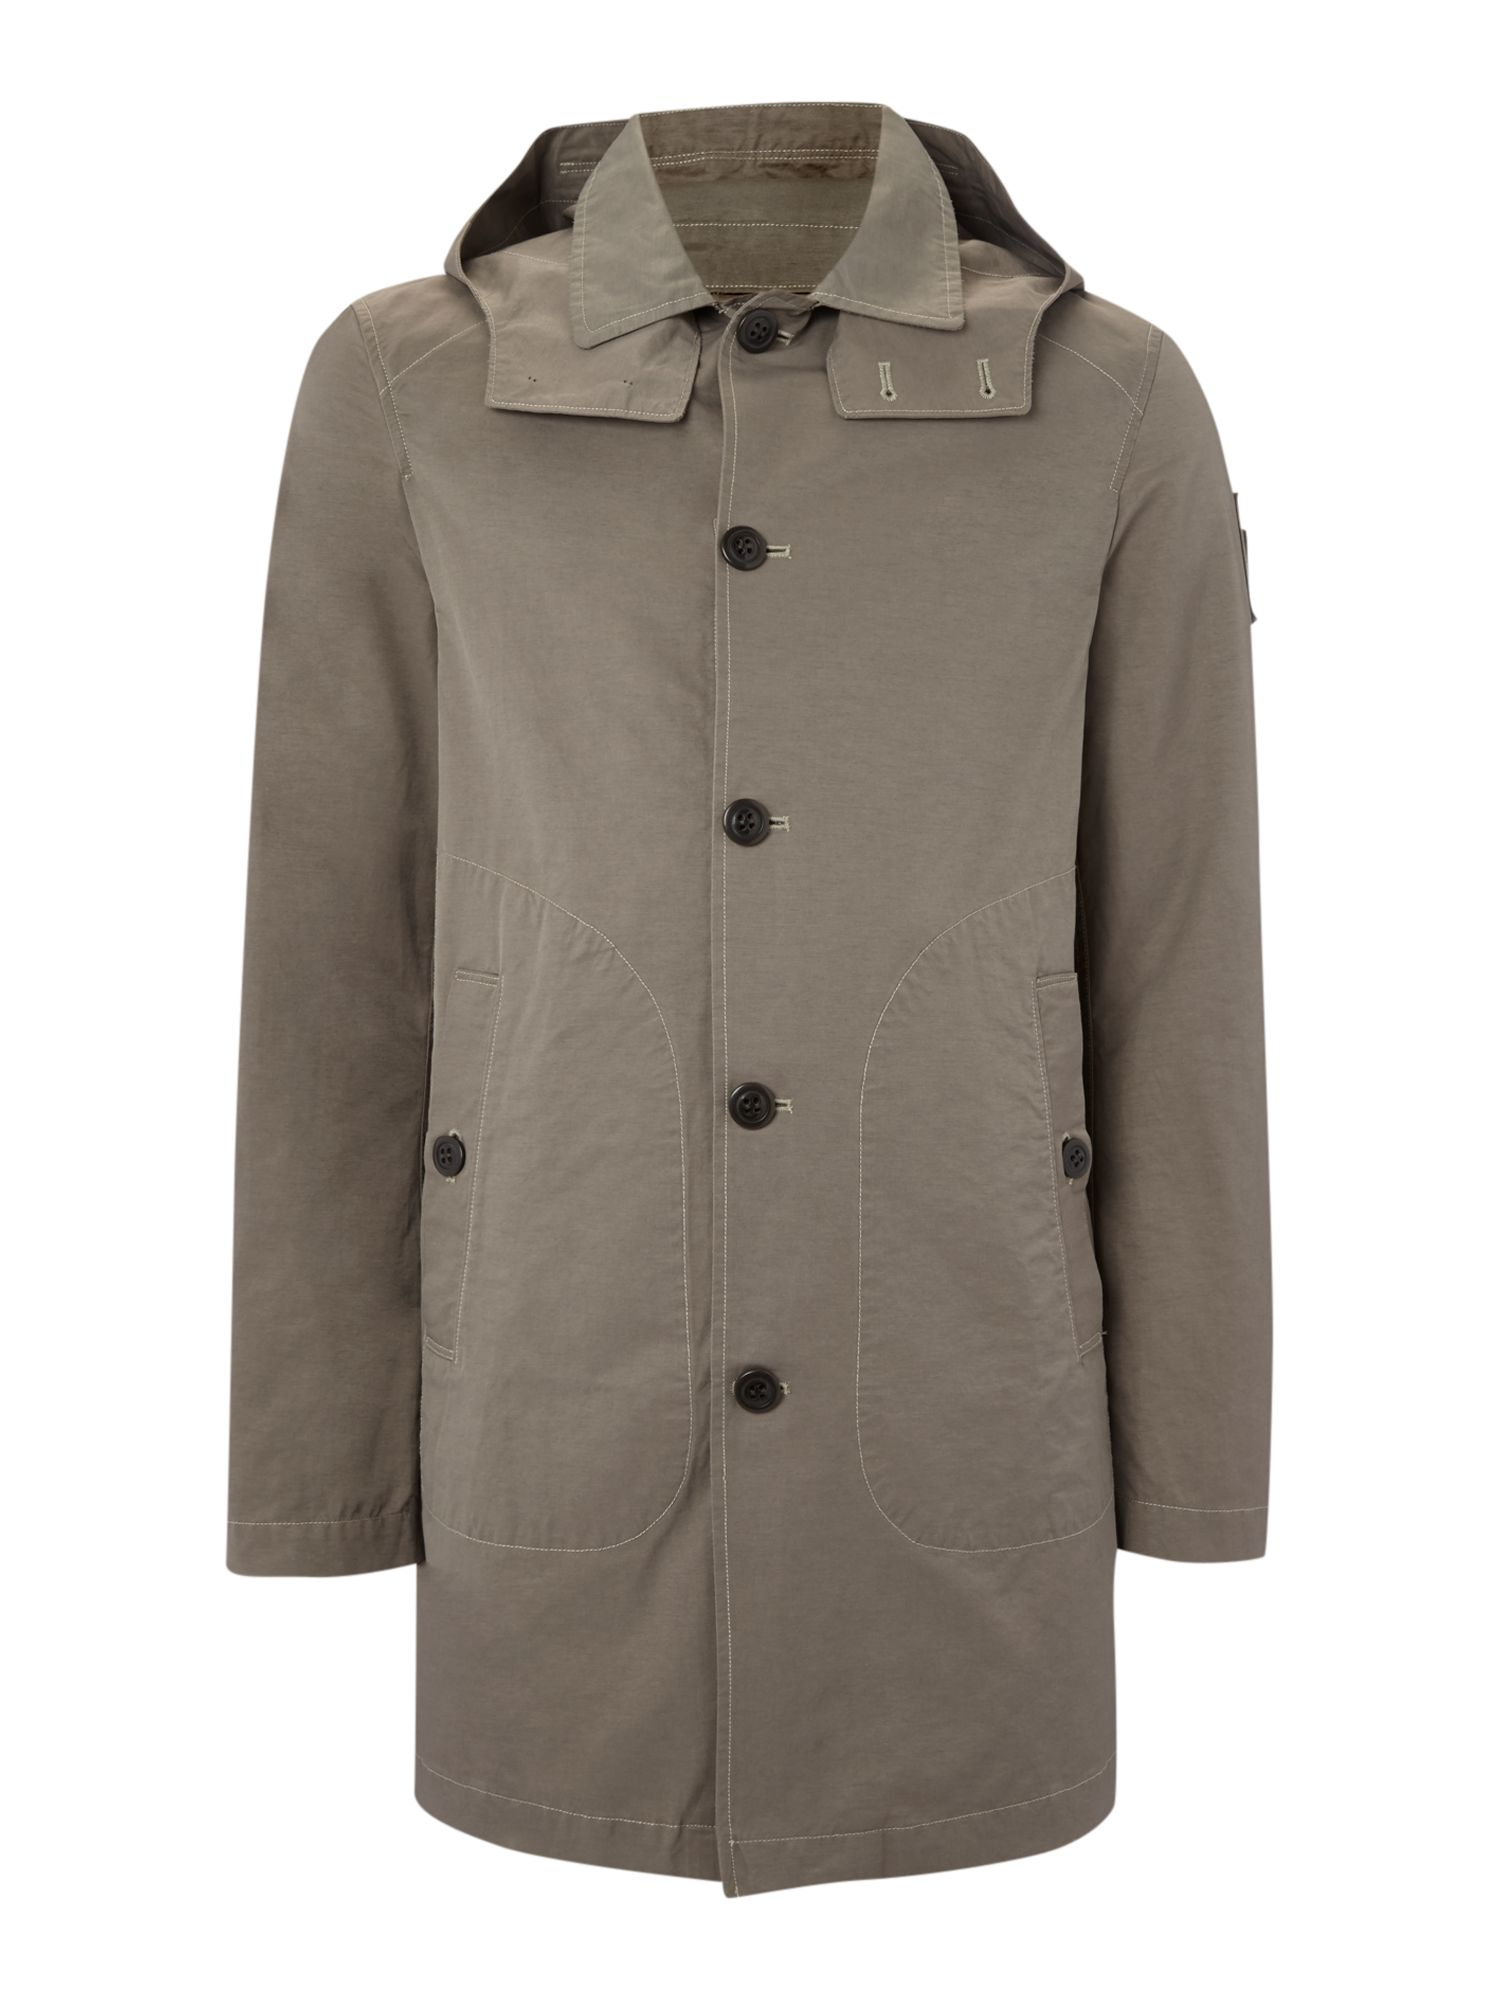 Cotton/nylon carcoat jacket